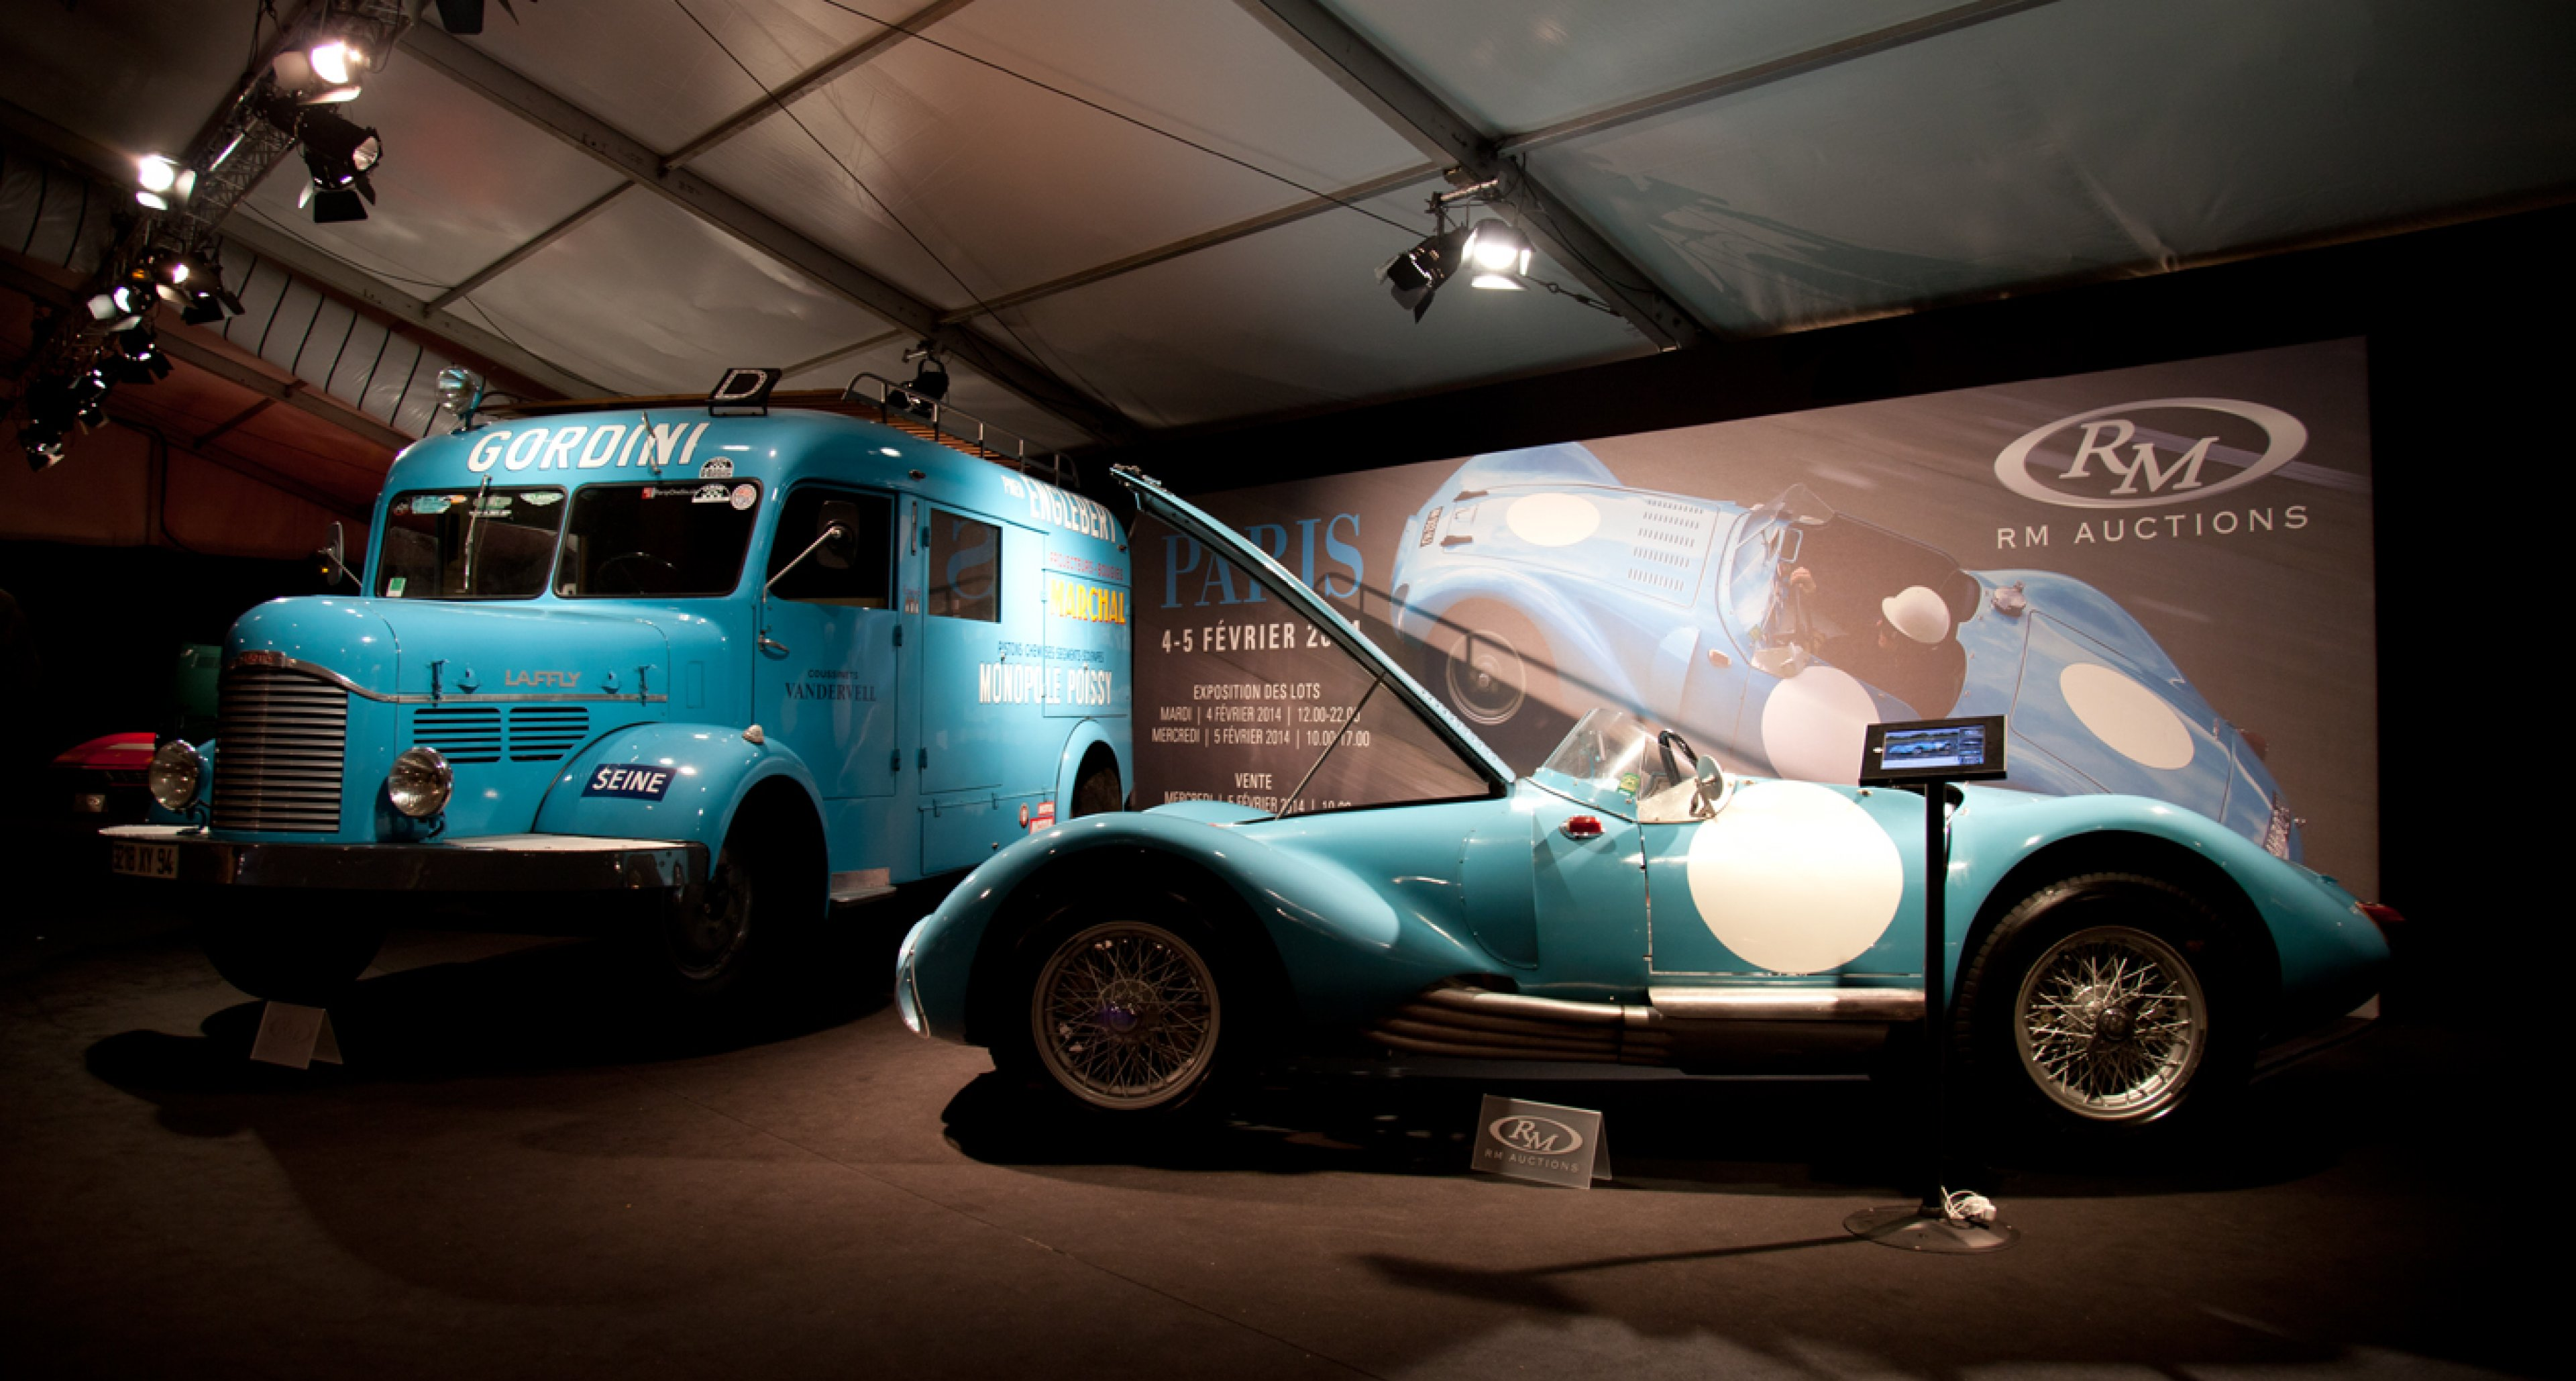 1953 Gordini Type 24 S 1973 Porsche 917/30 Can-Am Spyder at RM Auctions' 2014 Retromobile sale